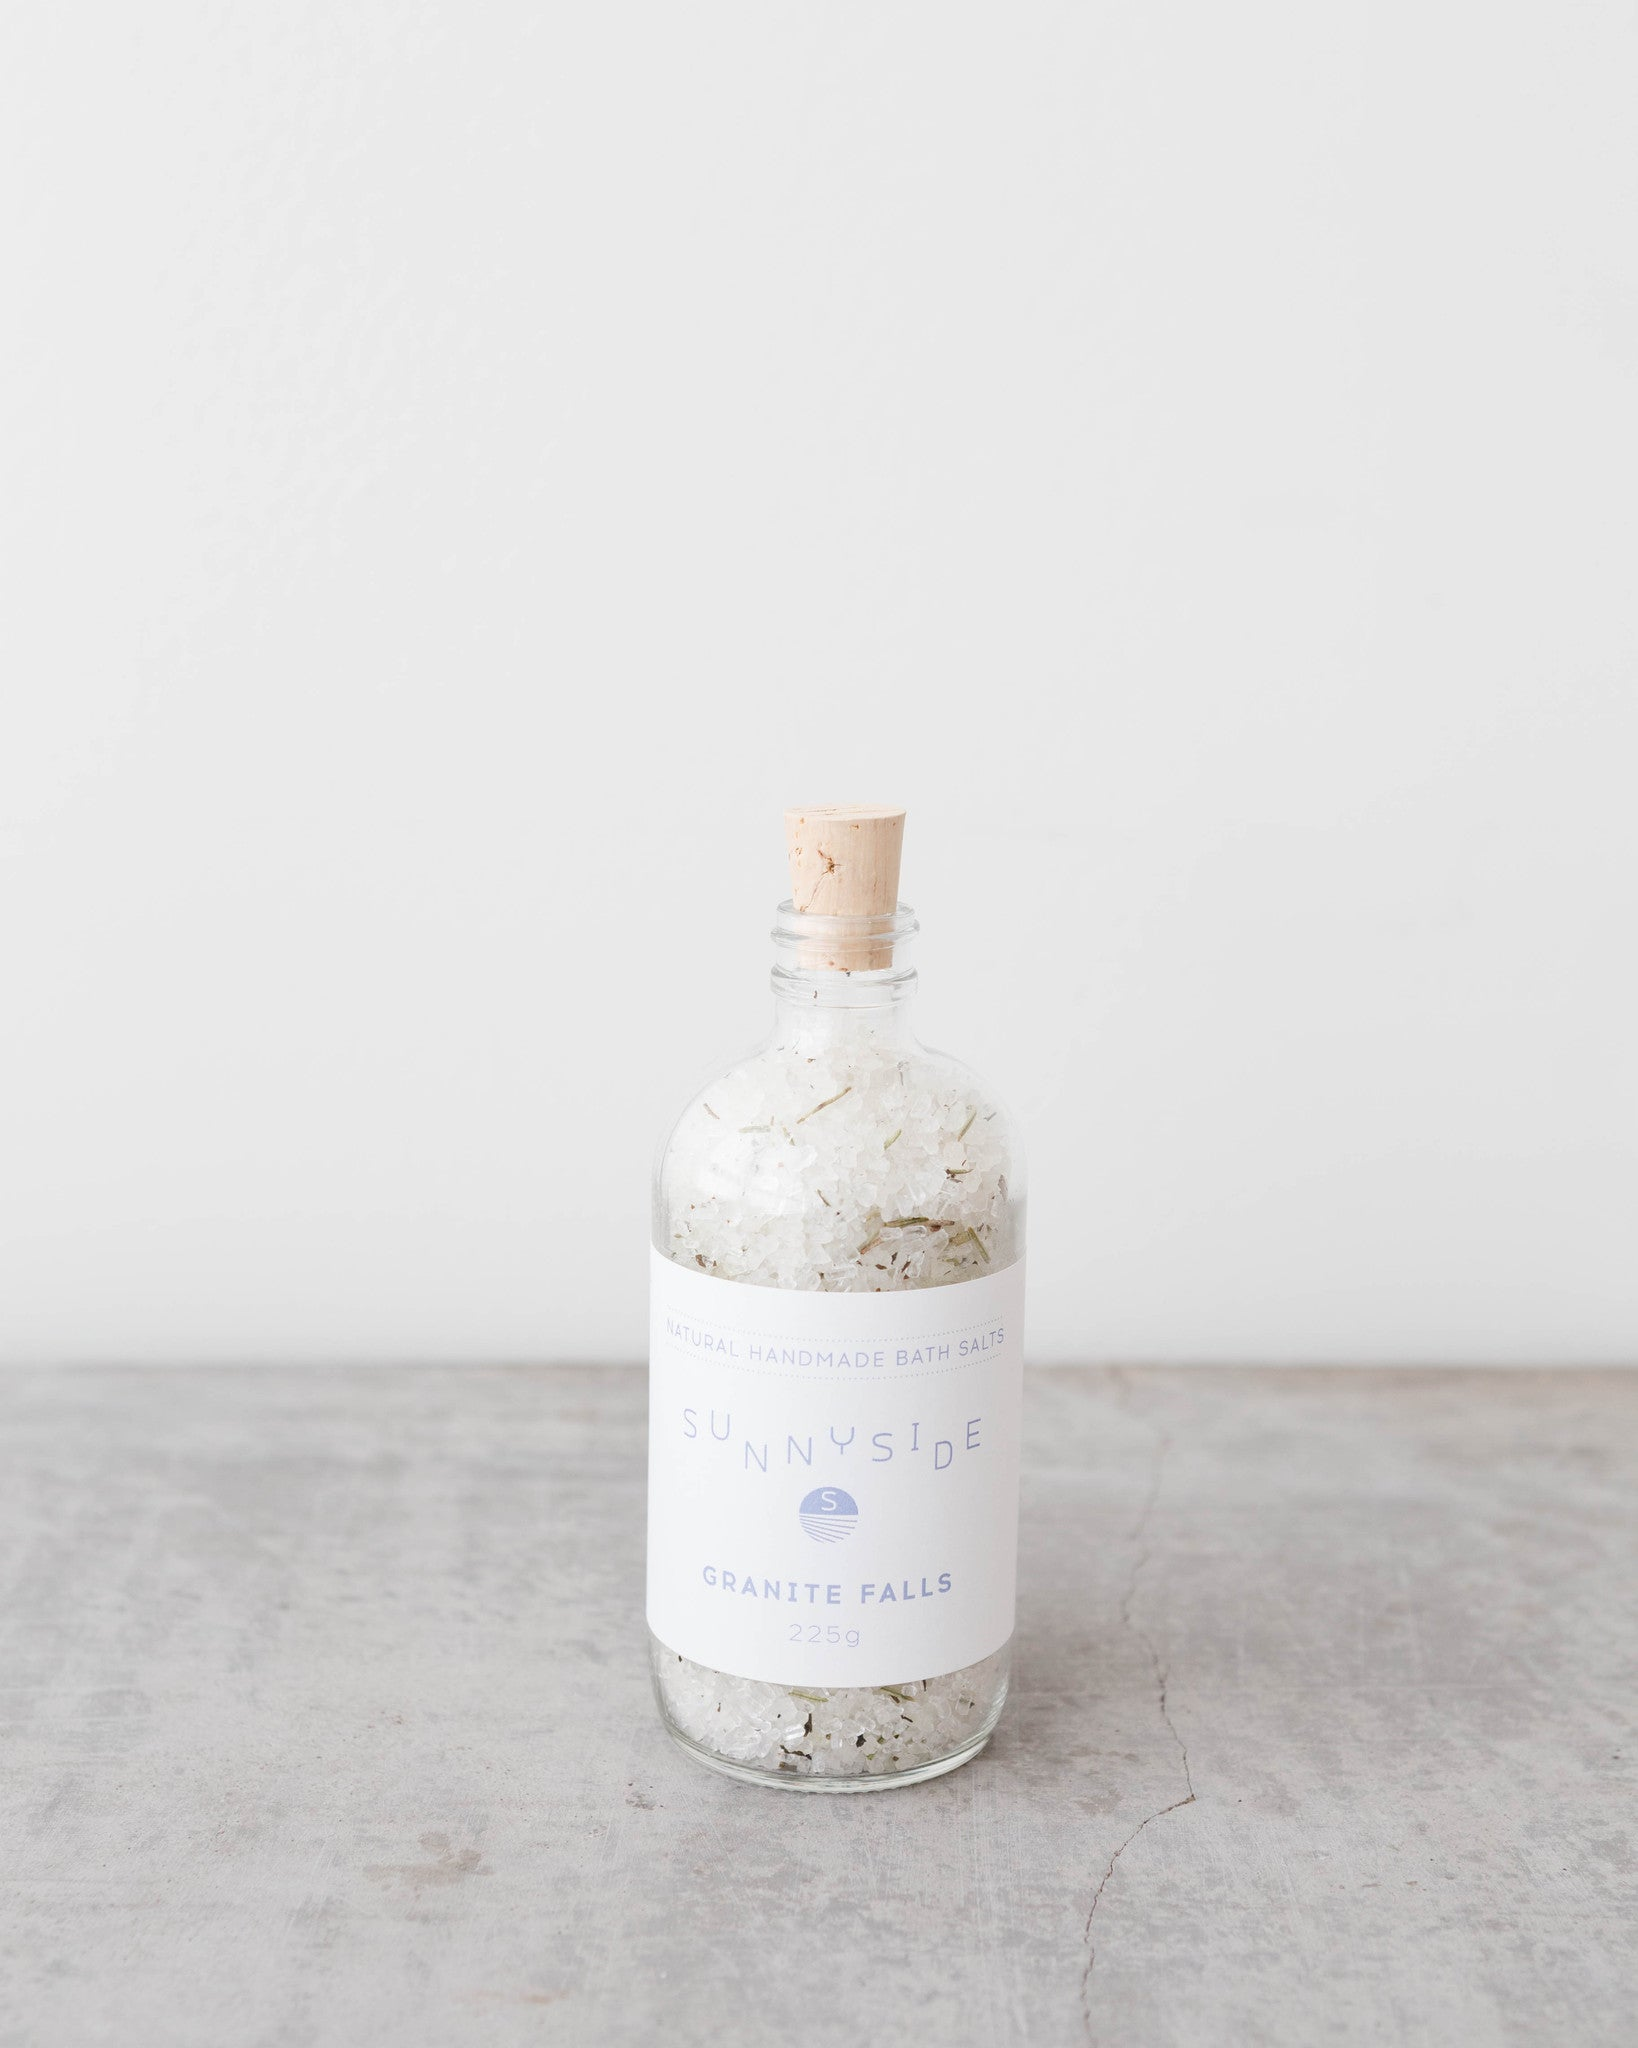 granite falls bath salts by sunnyside